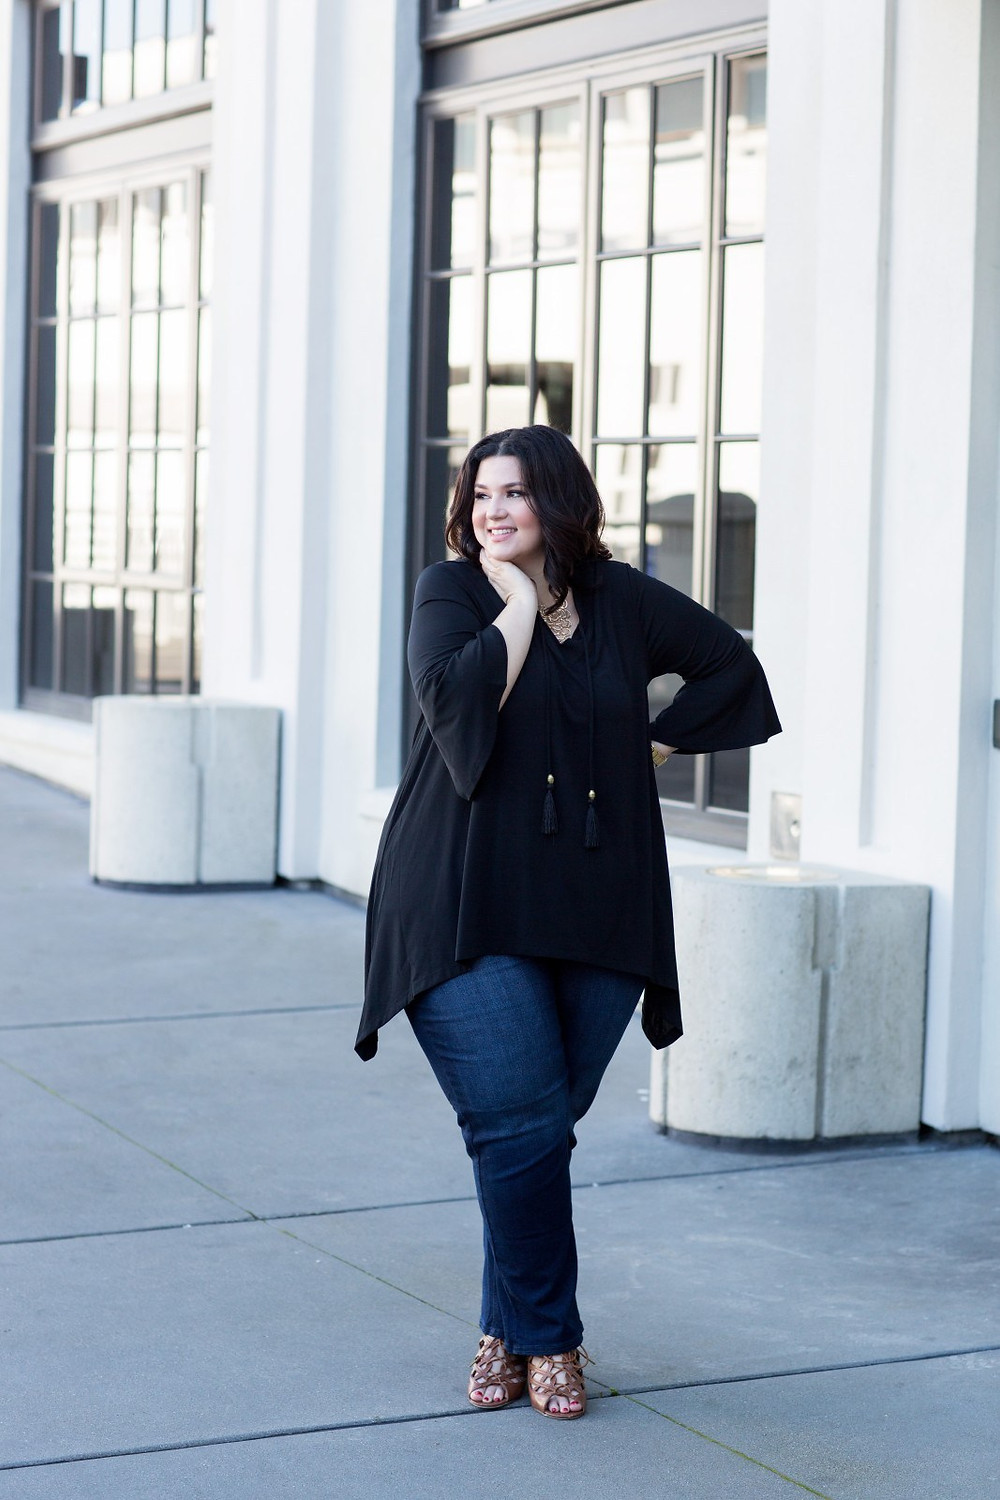 catherines plus size ootd crystal sometimes glam san francisco china town lombard street alamo union square